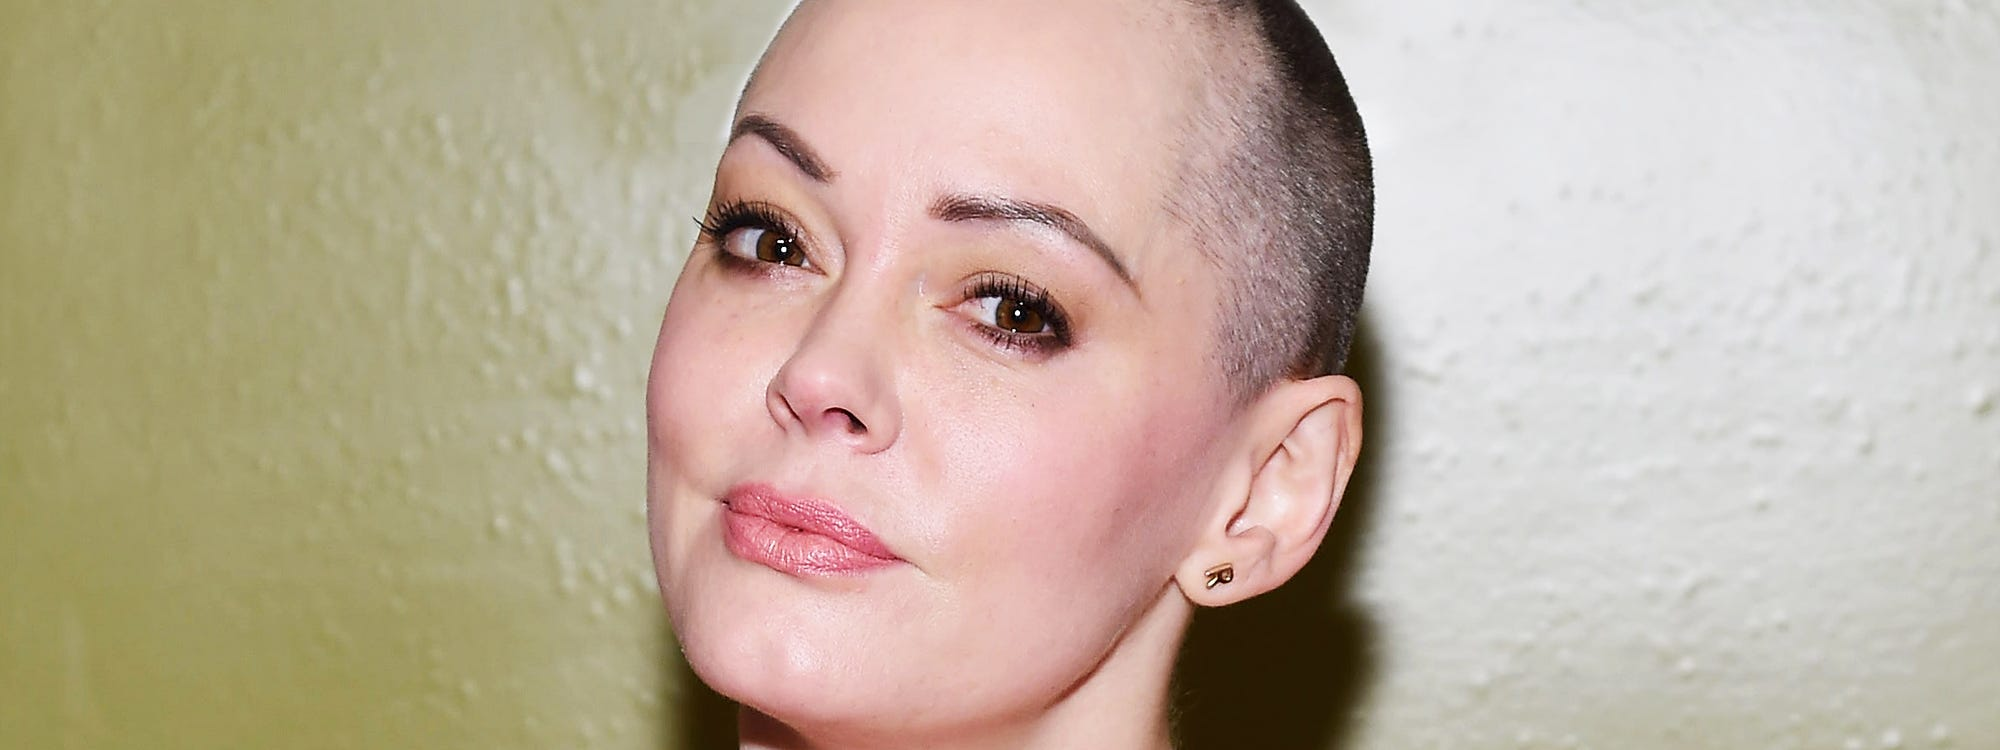 Rose McGowan Drug Charge Dismissed, Why